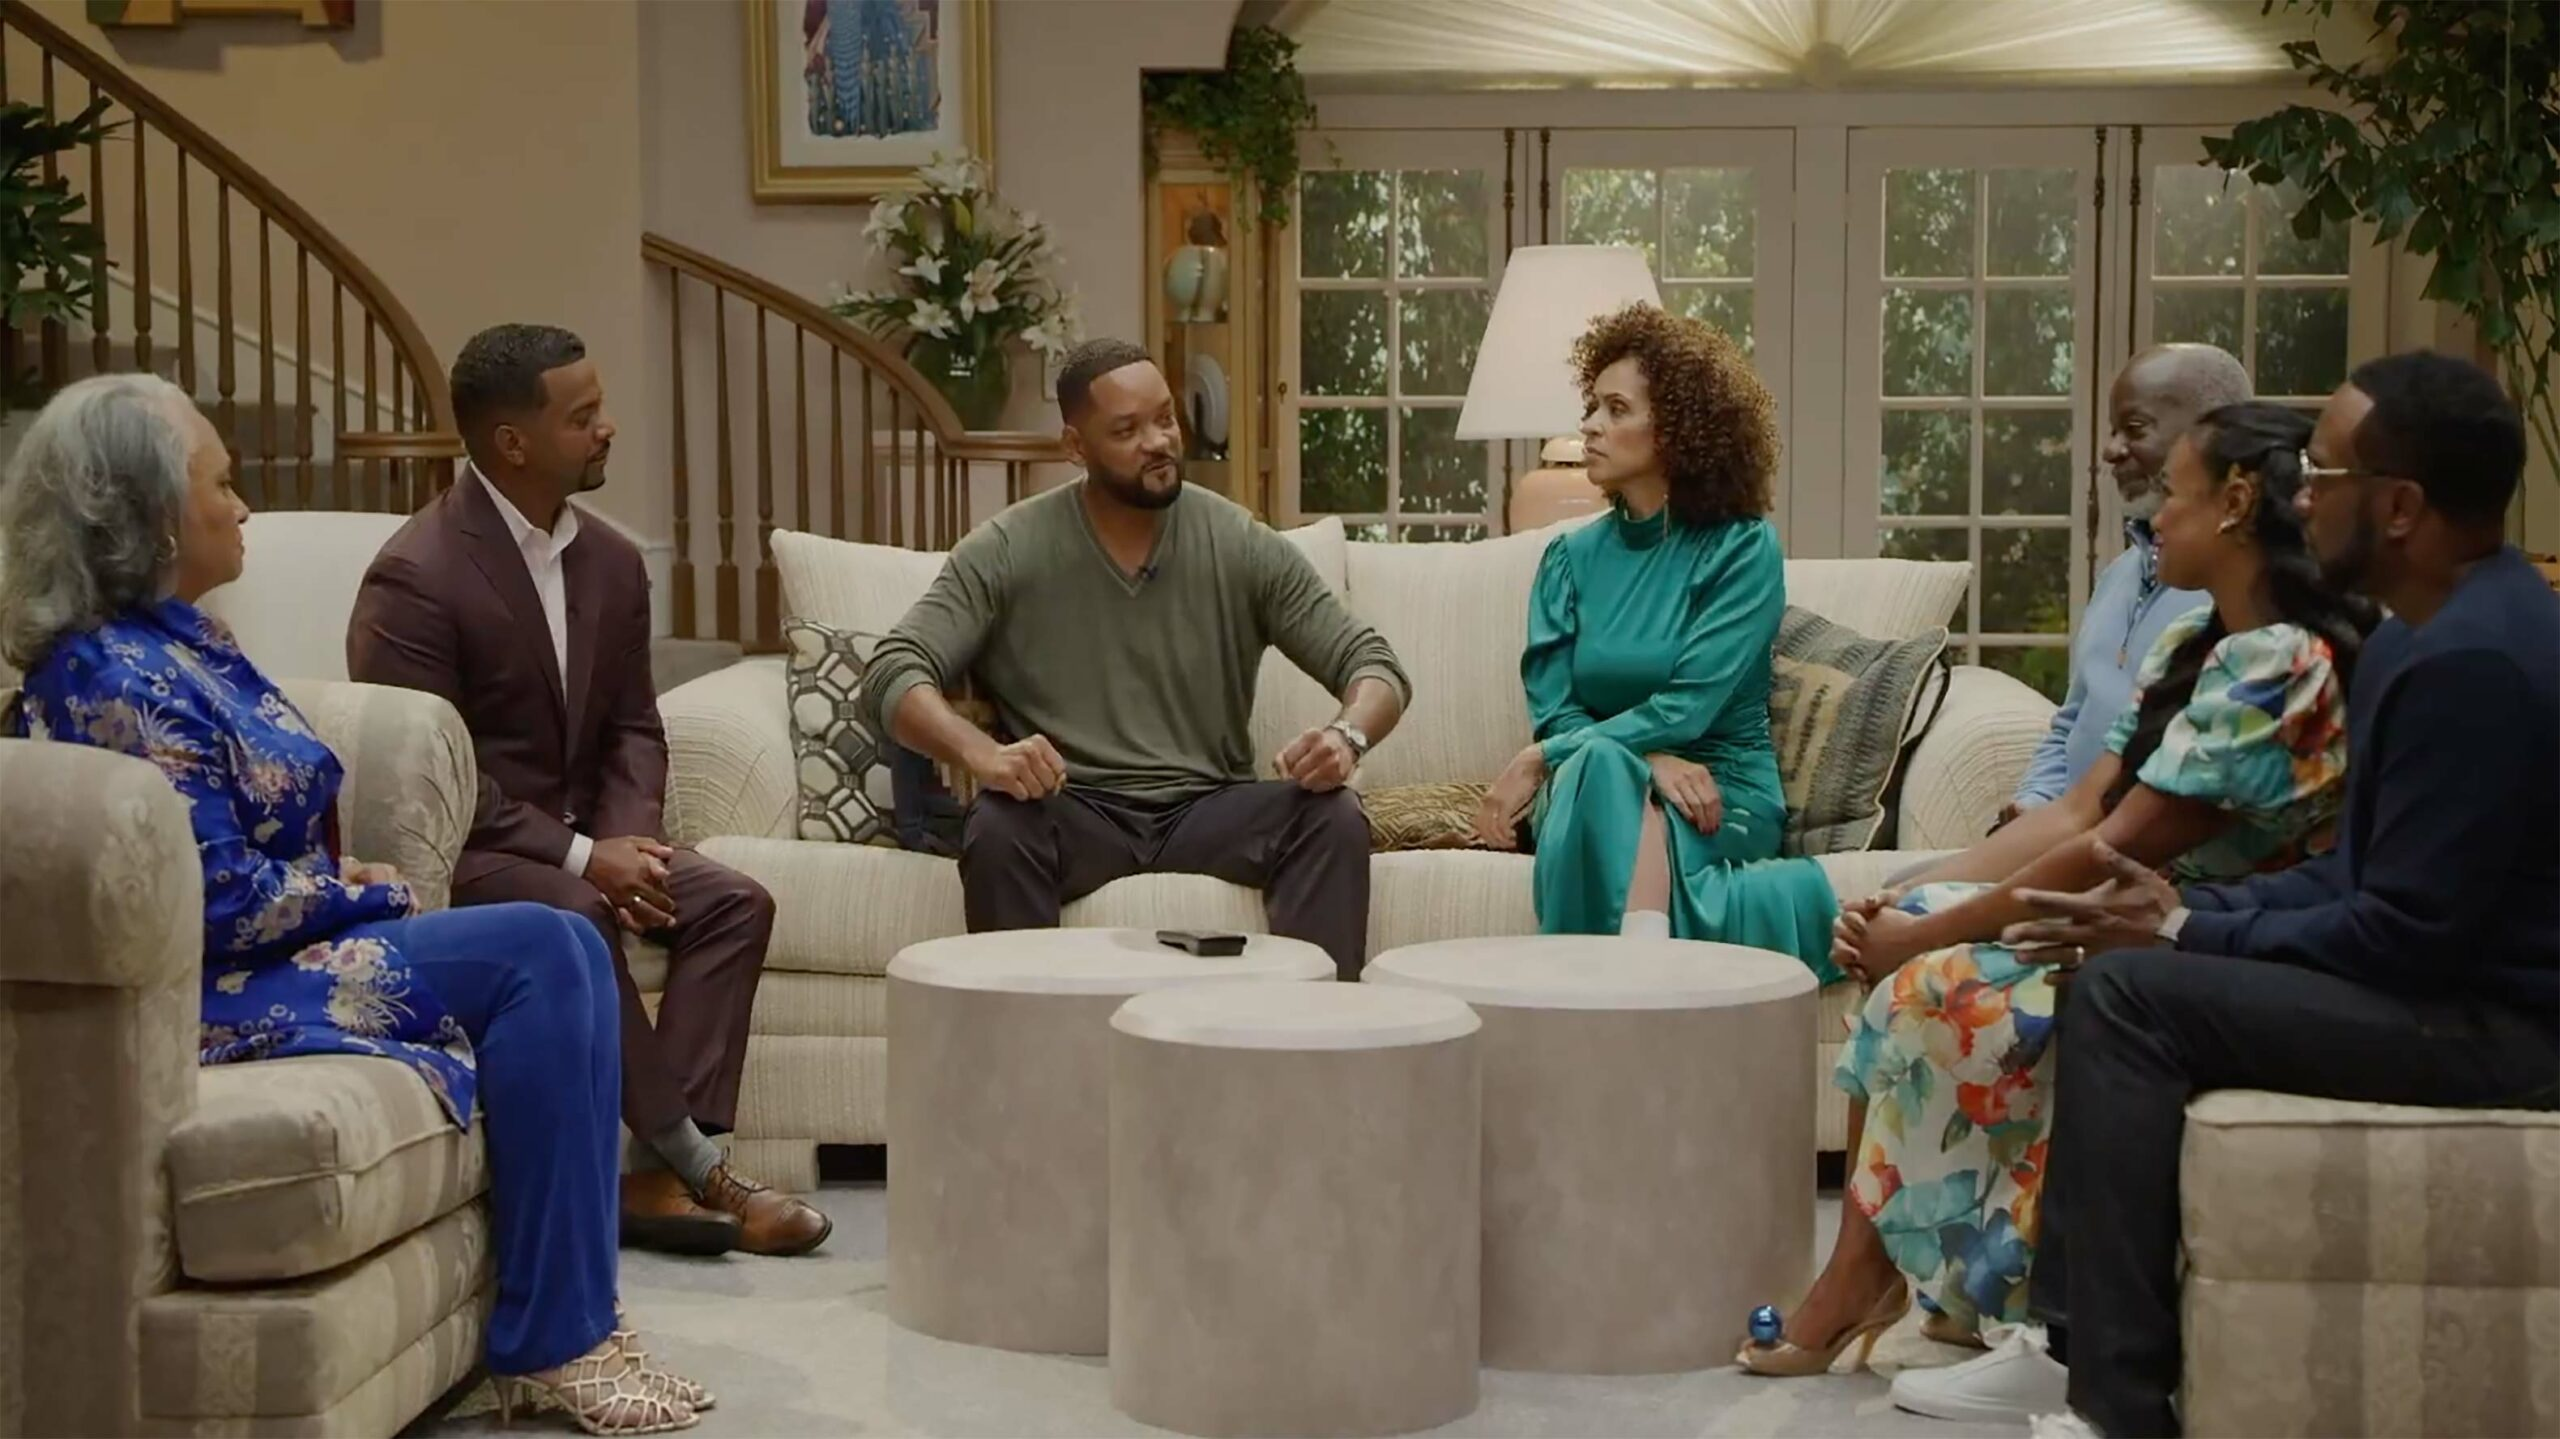 Fresh Prince of Bel-Air reunion special is coming to Crave on November 19